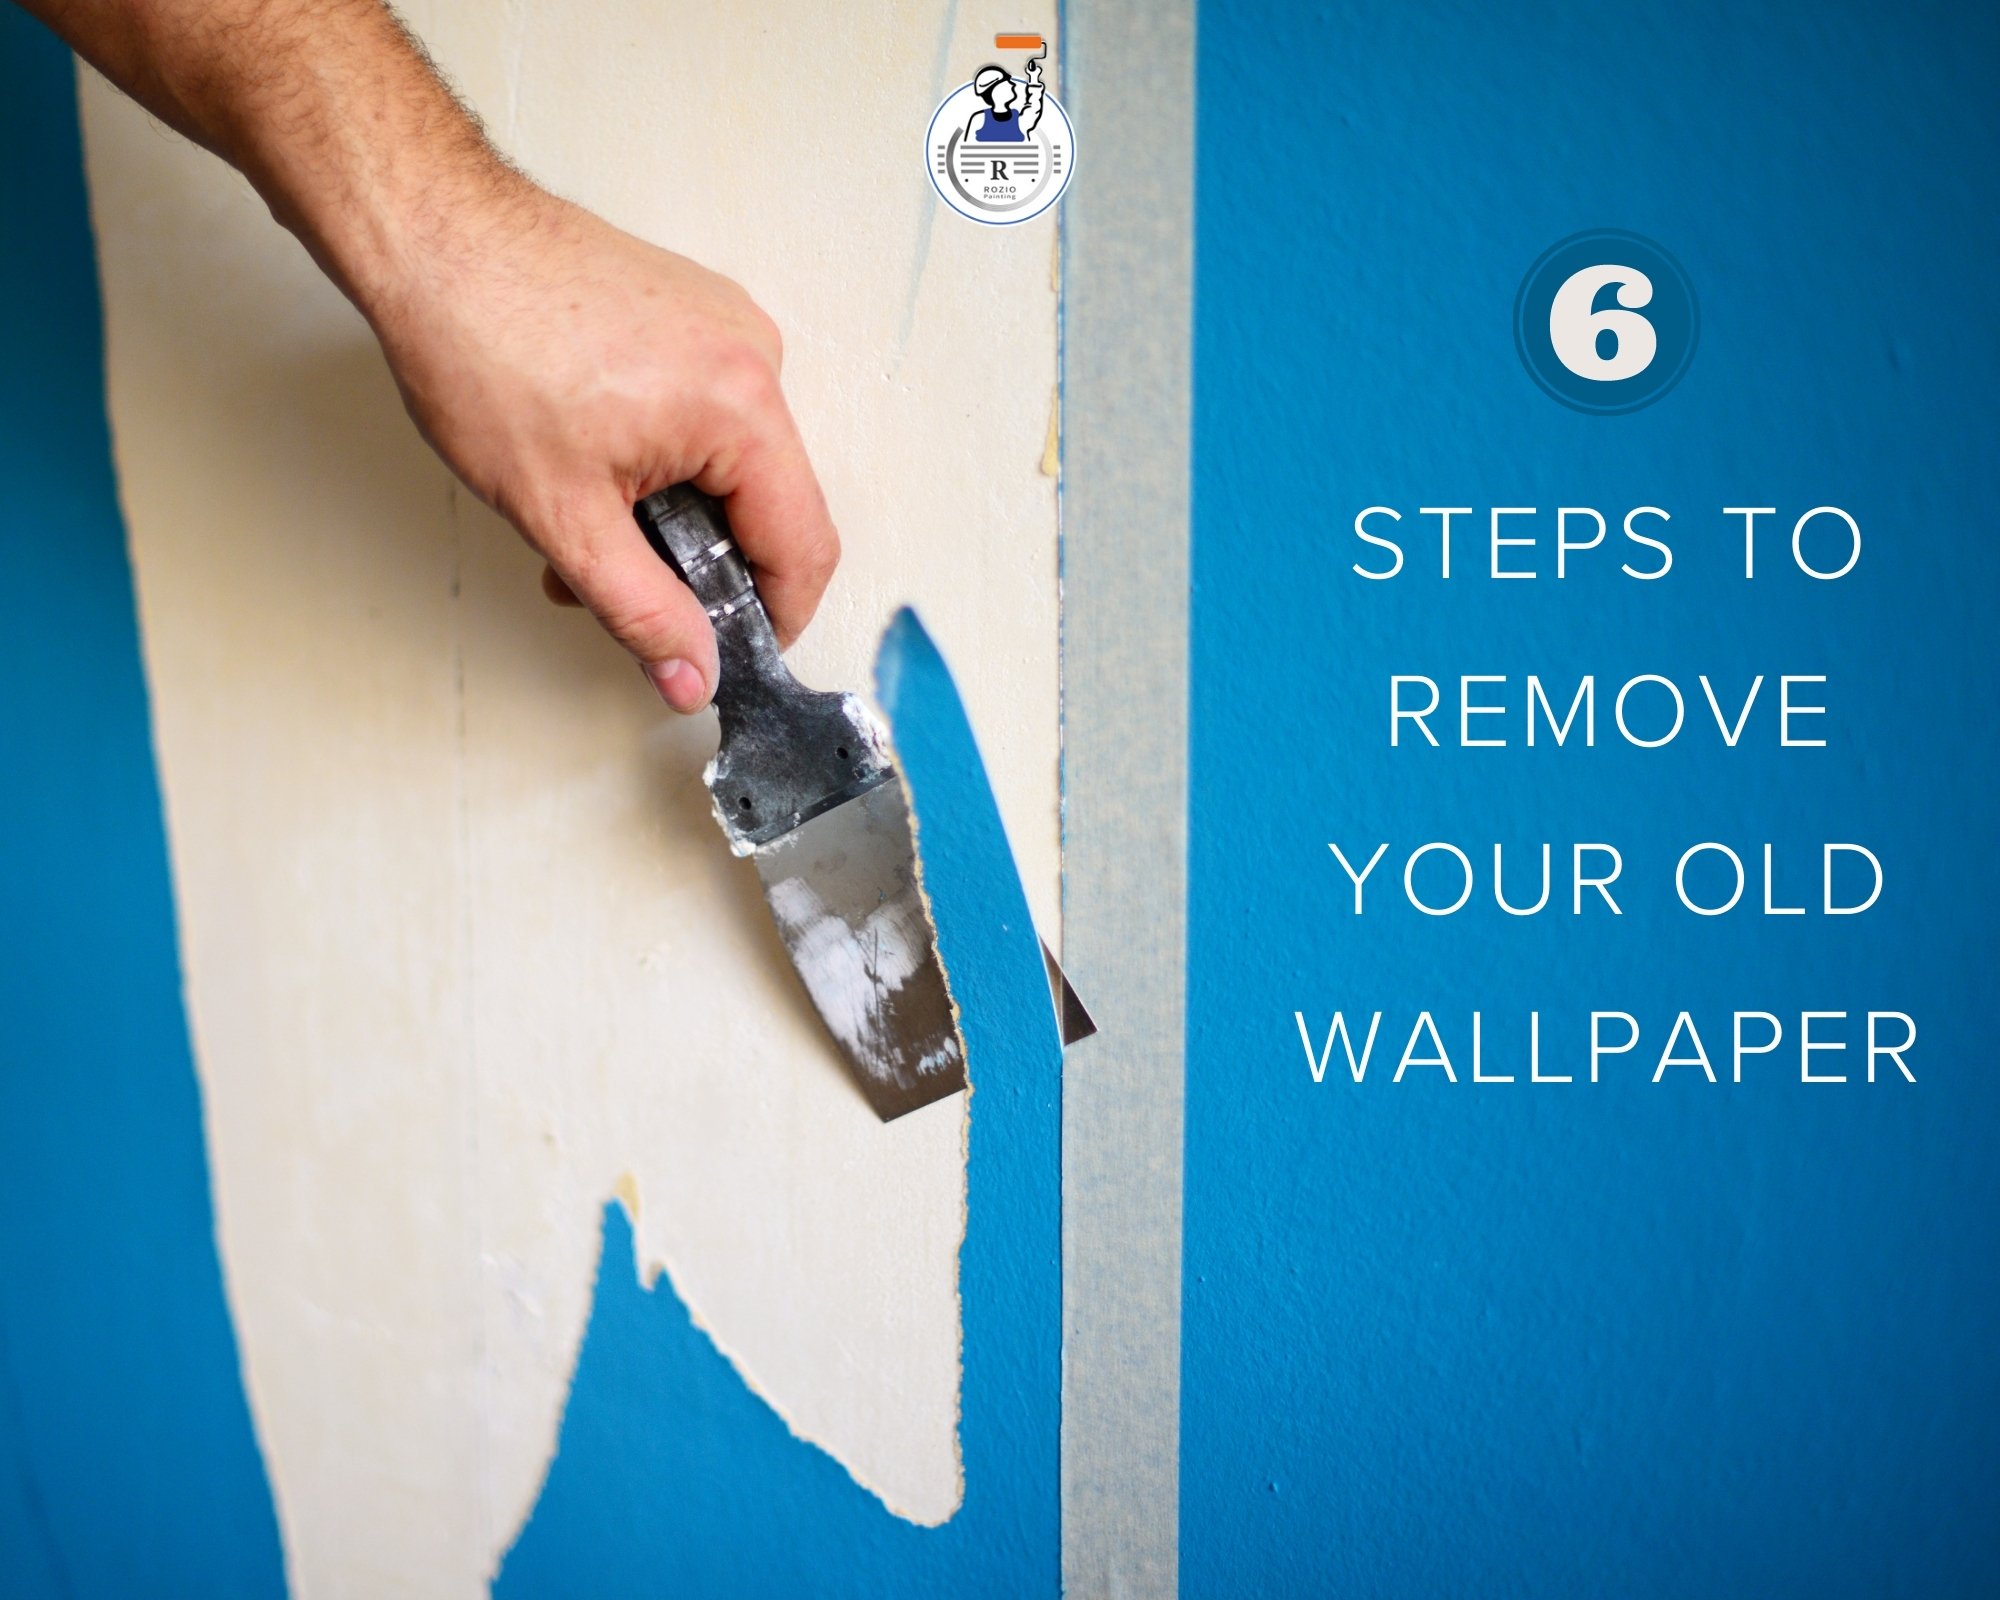 6 Steps To Remove Your Old Wallpaper